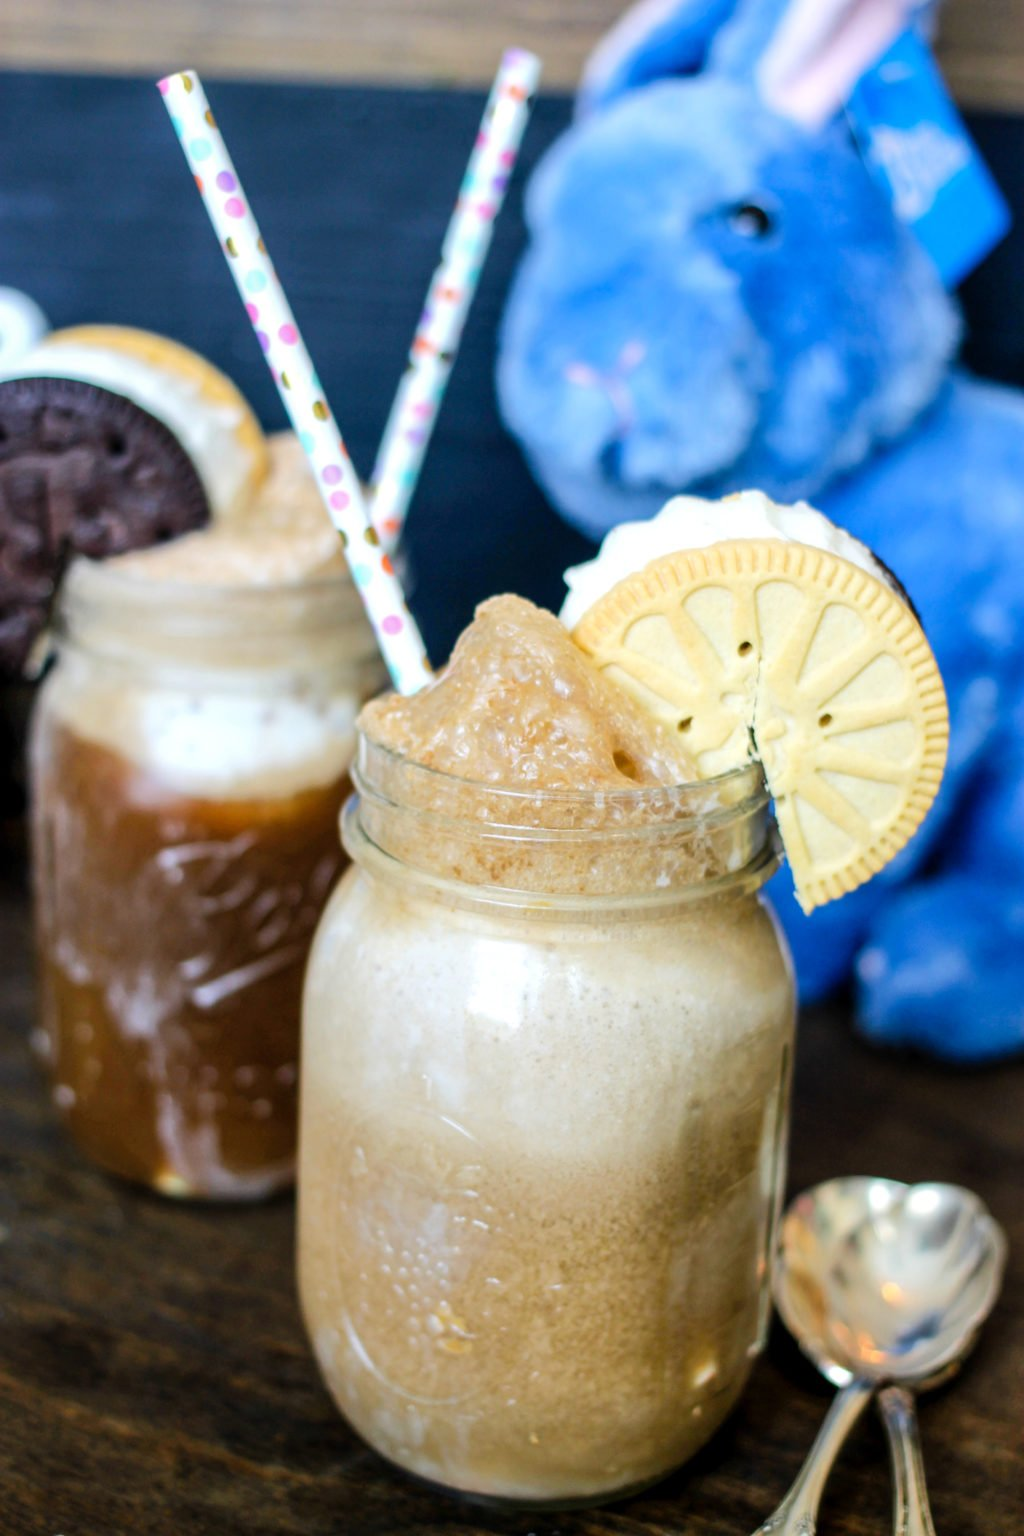 These Easy Ice Cream Sandwich Floats come together with a few quick ingredients and will help keep you cool all summer long!